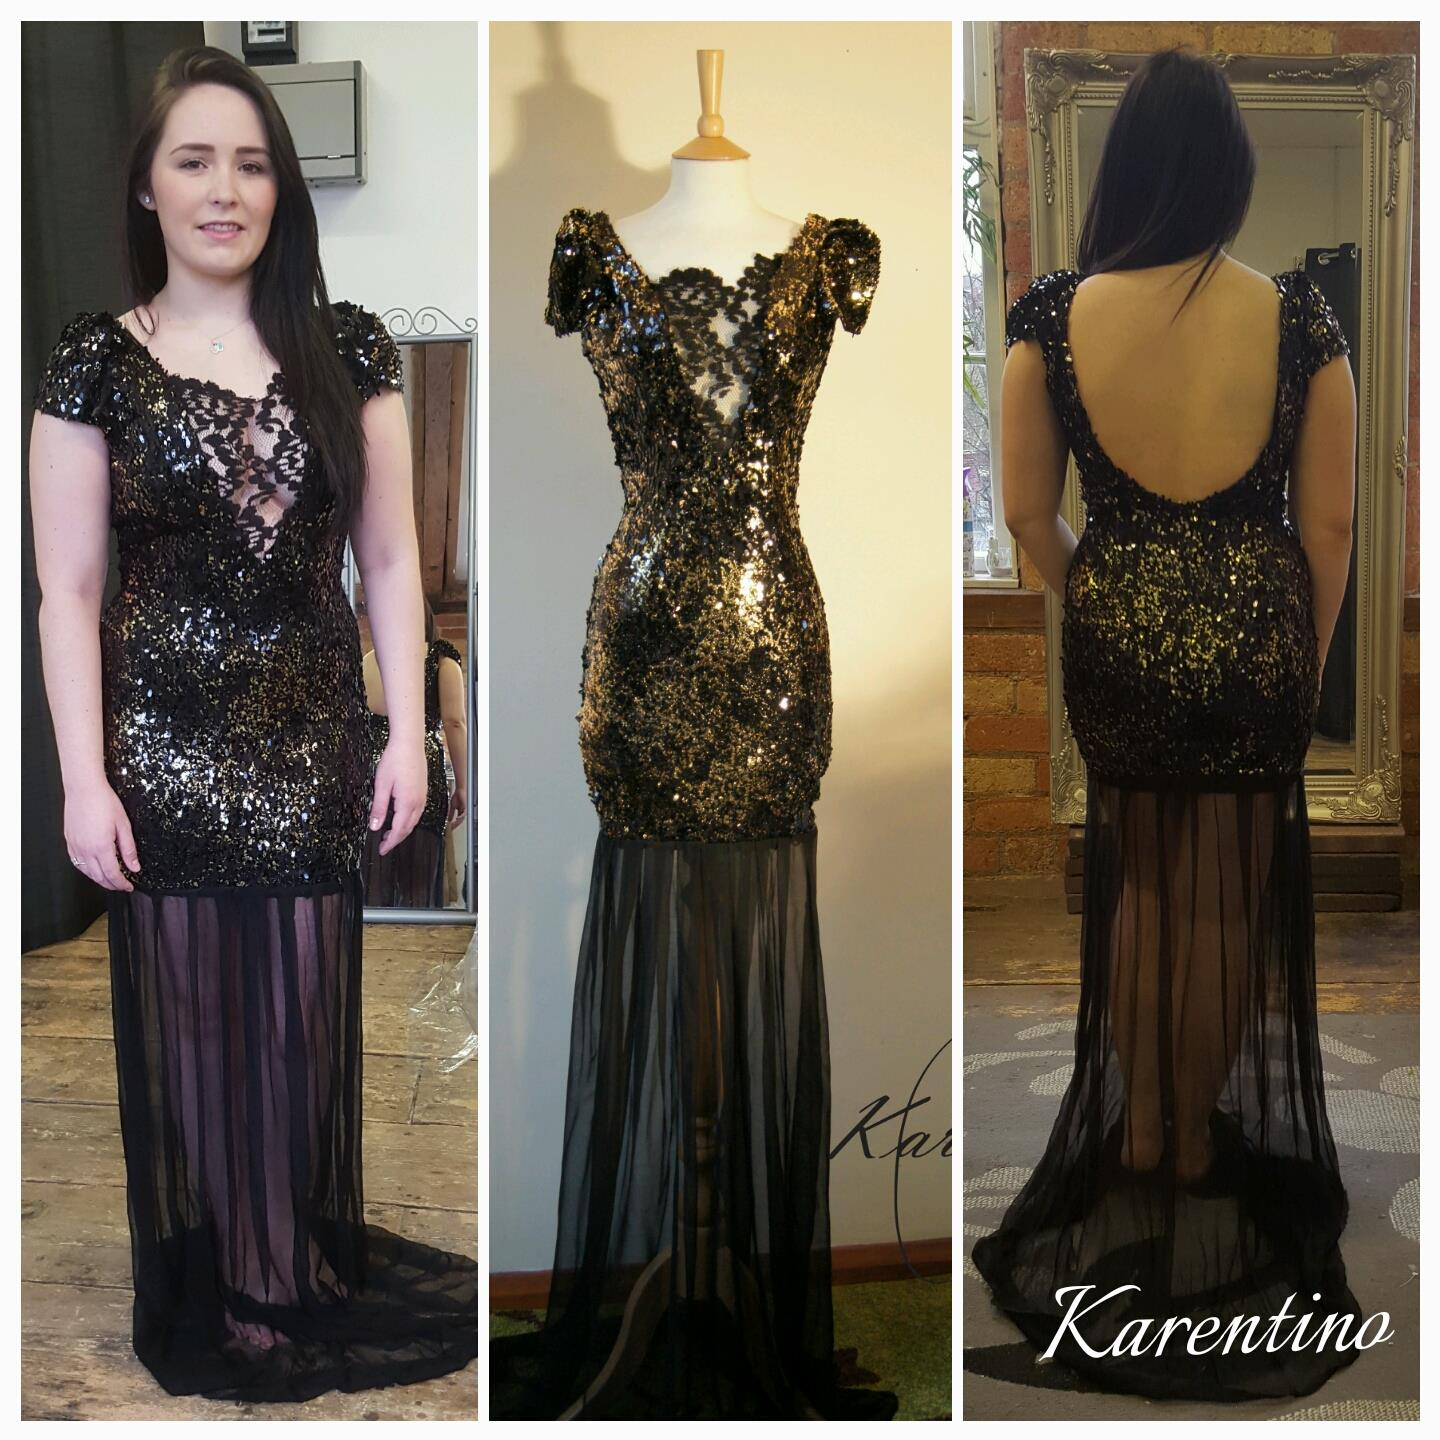 Karentino London Designer/Dressmaker | Find a Wedding Supplier